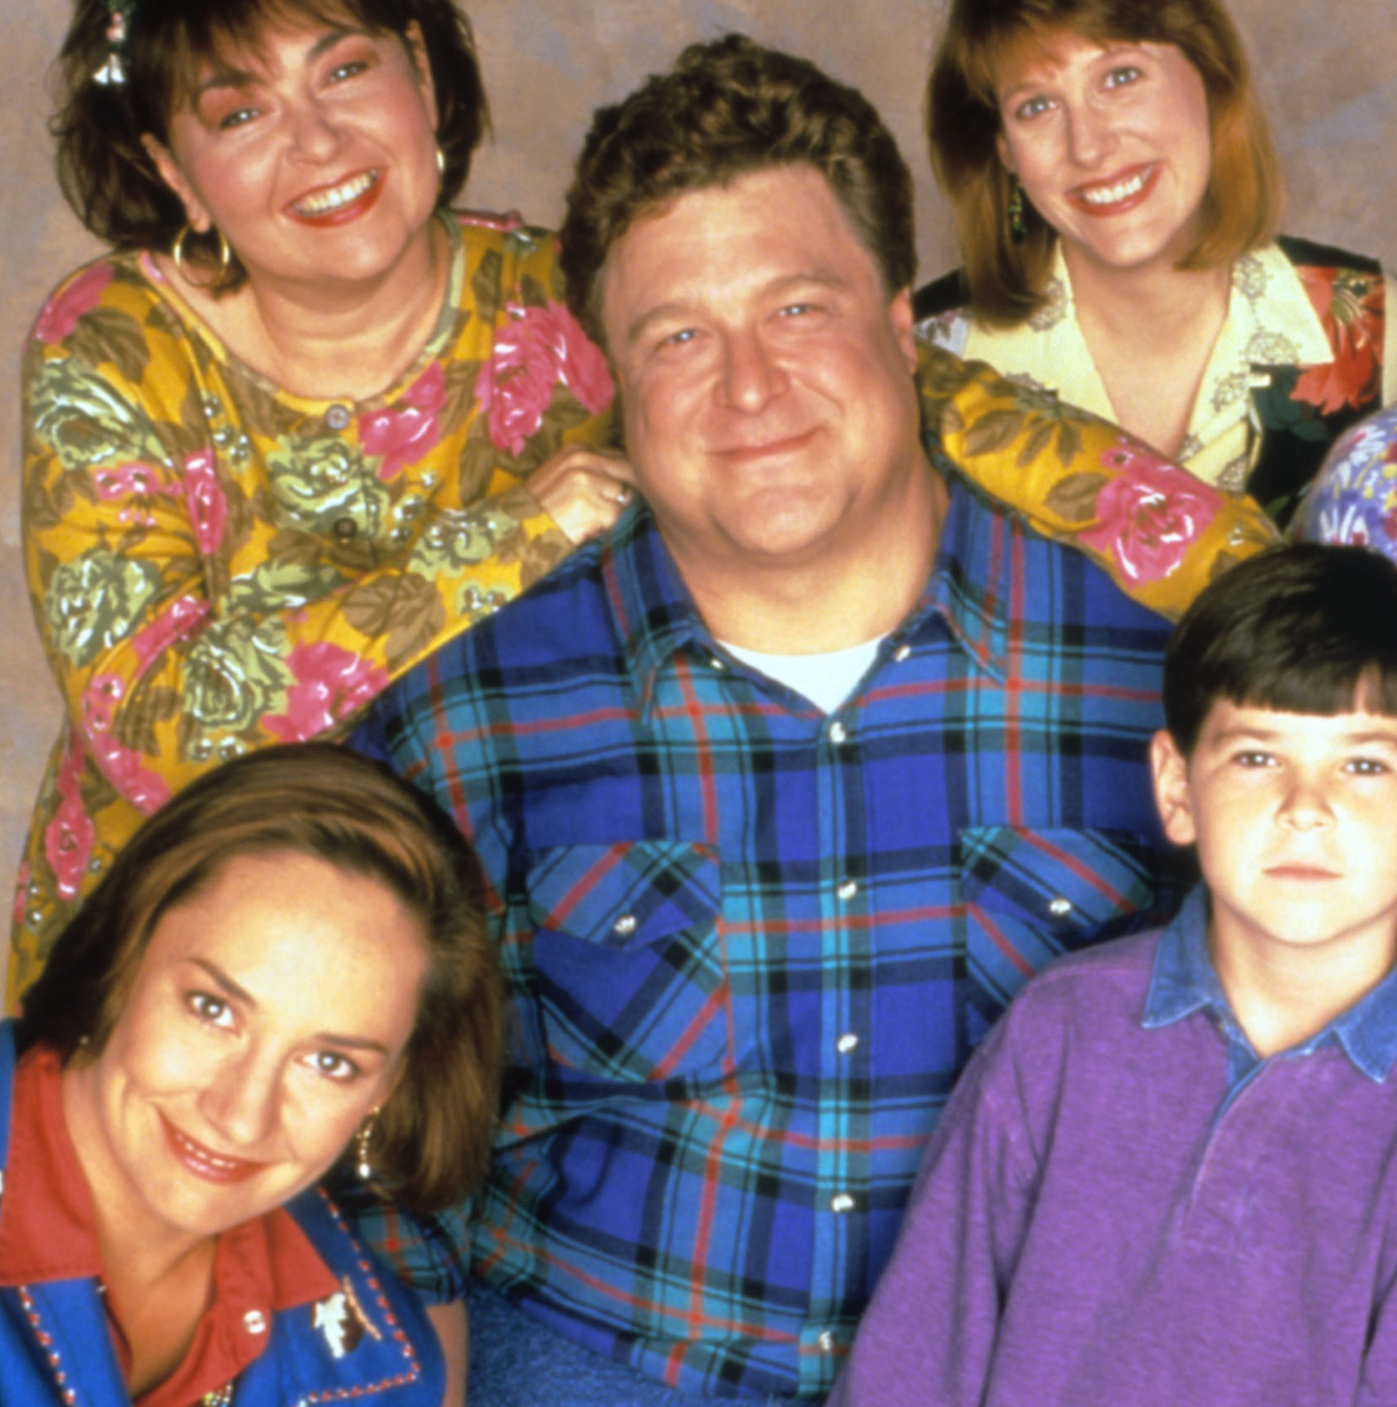 roseanne tv show today 170316 tease 02 ddbc0d8e4682b81d1e1cc1a4a93b75f8 10 Fantastic Facts About Roseanne That You Probably Didn't Know!